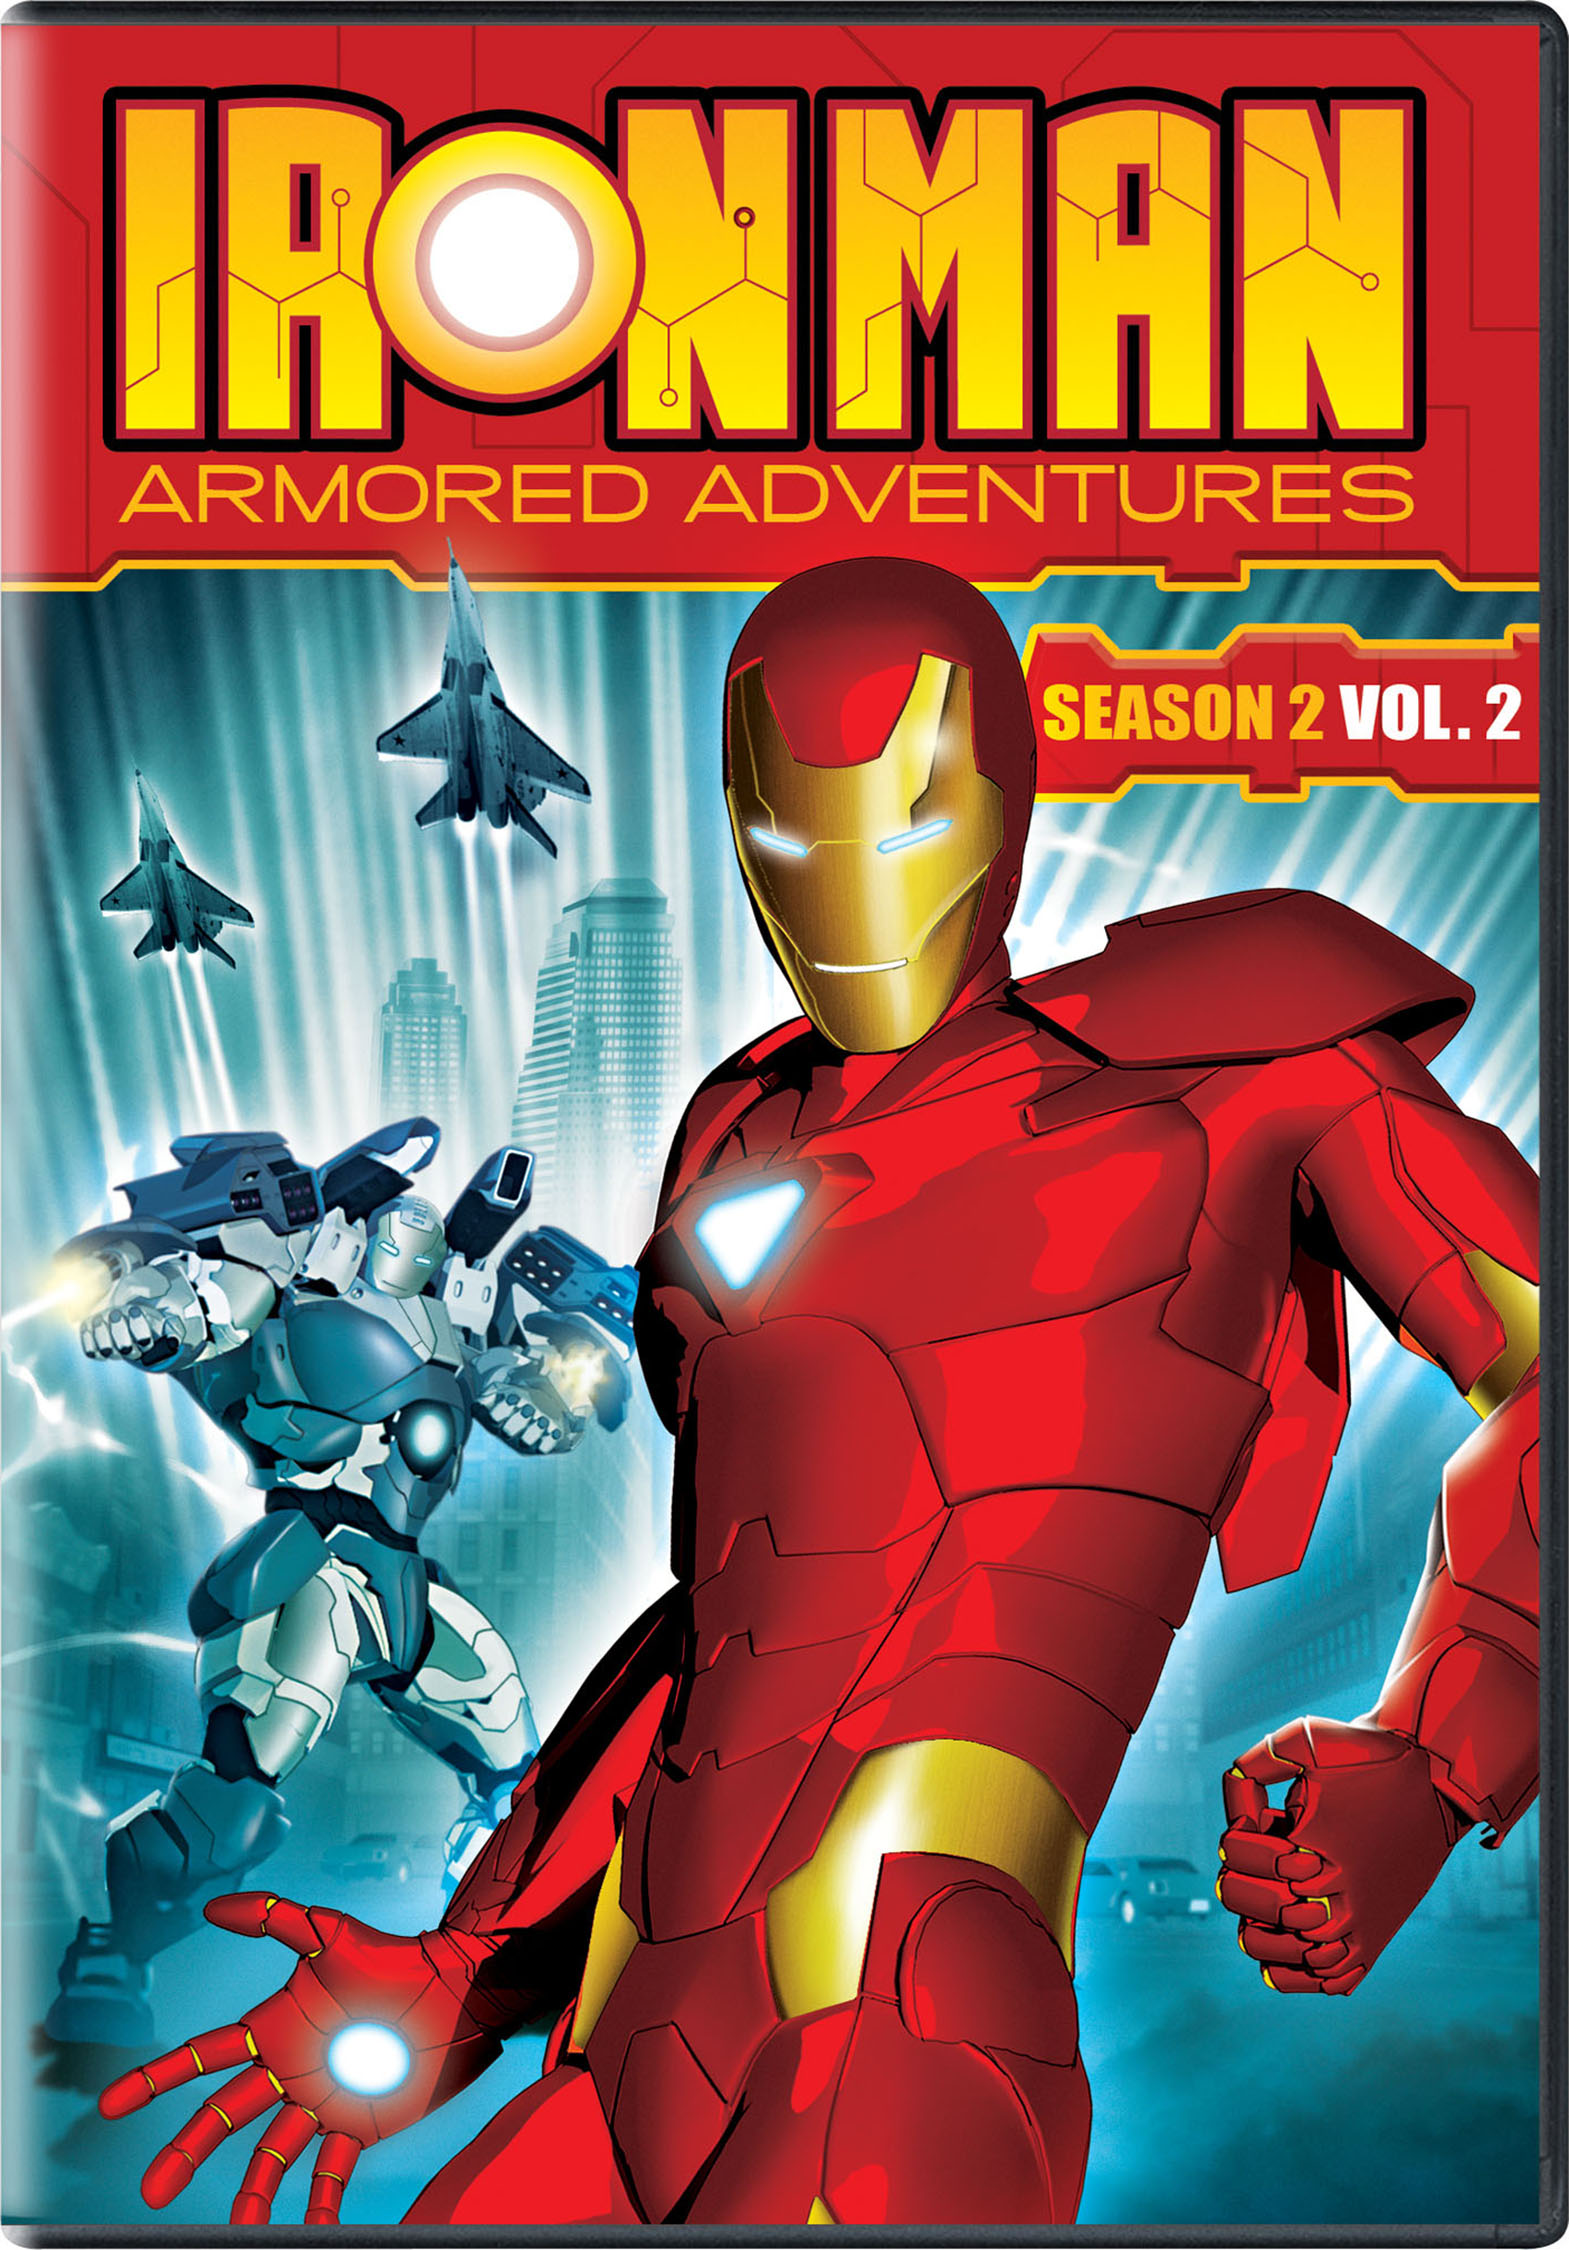 Iron Man: Armored Adventures kapak